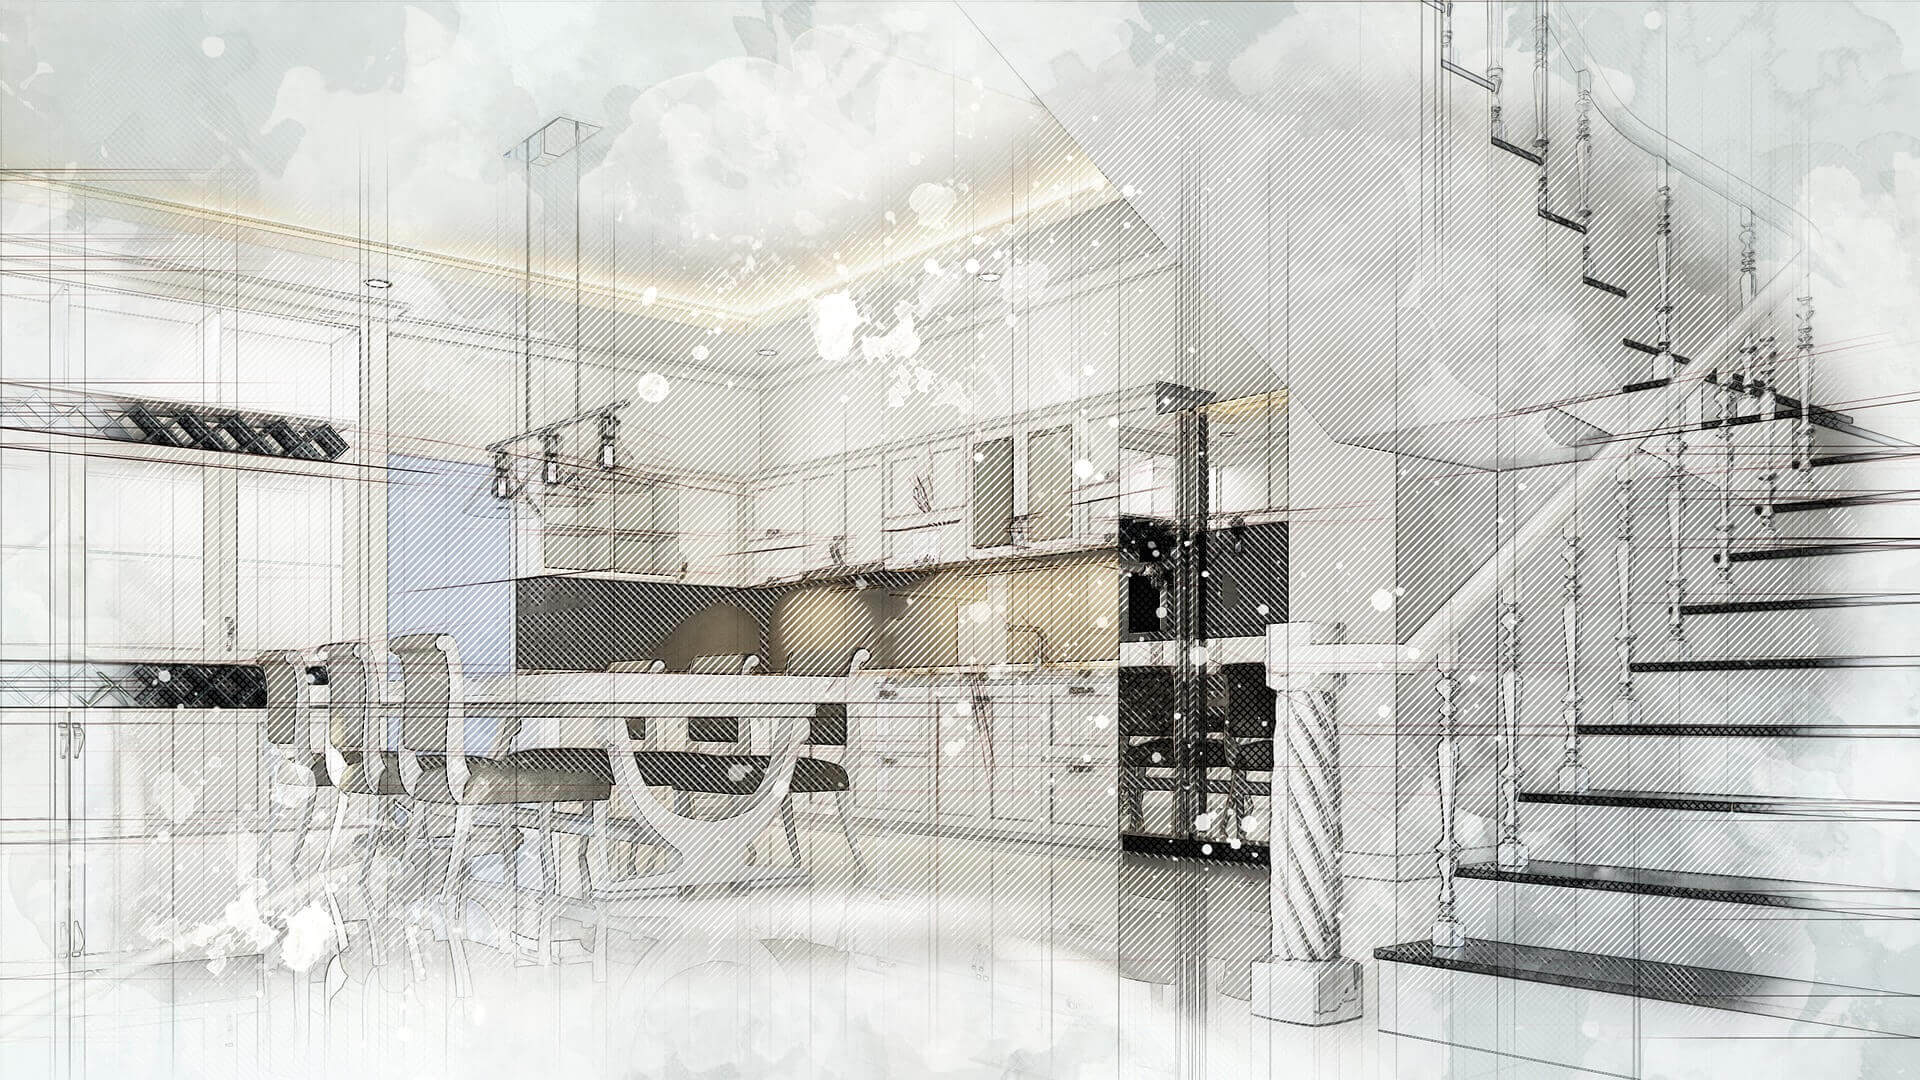 Sketch design of a modern kitchen and staircase